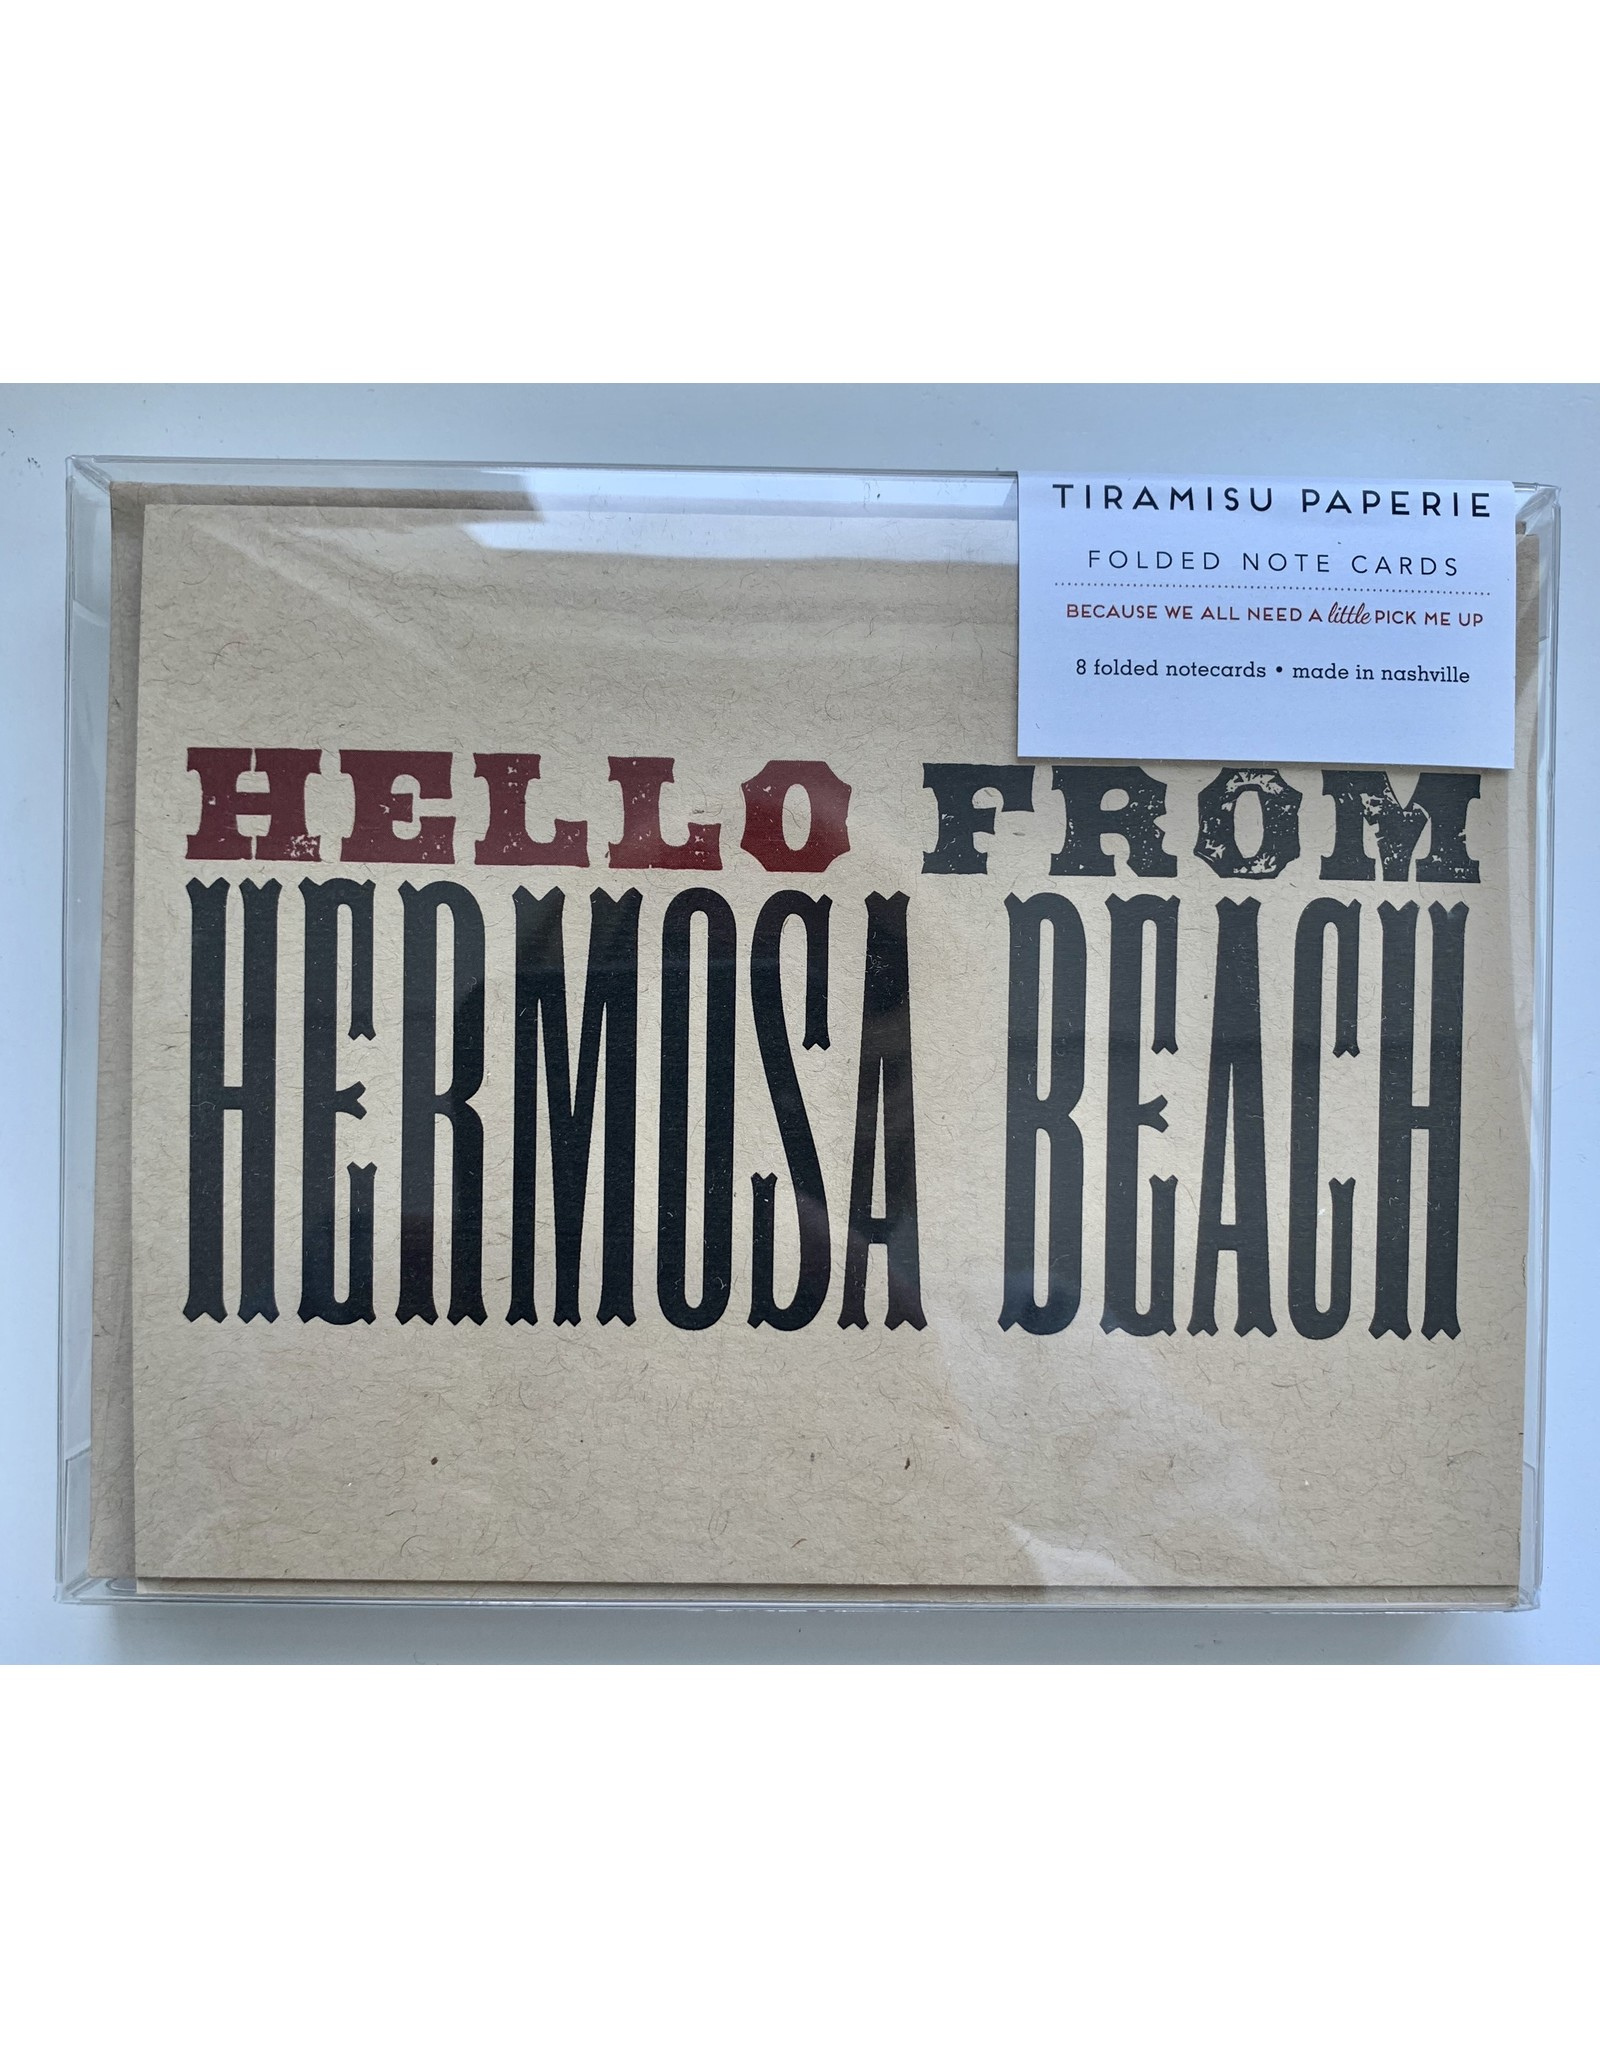 Tiramisu Hello from Hb Note Cards